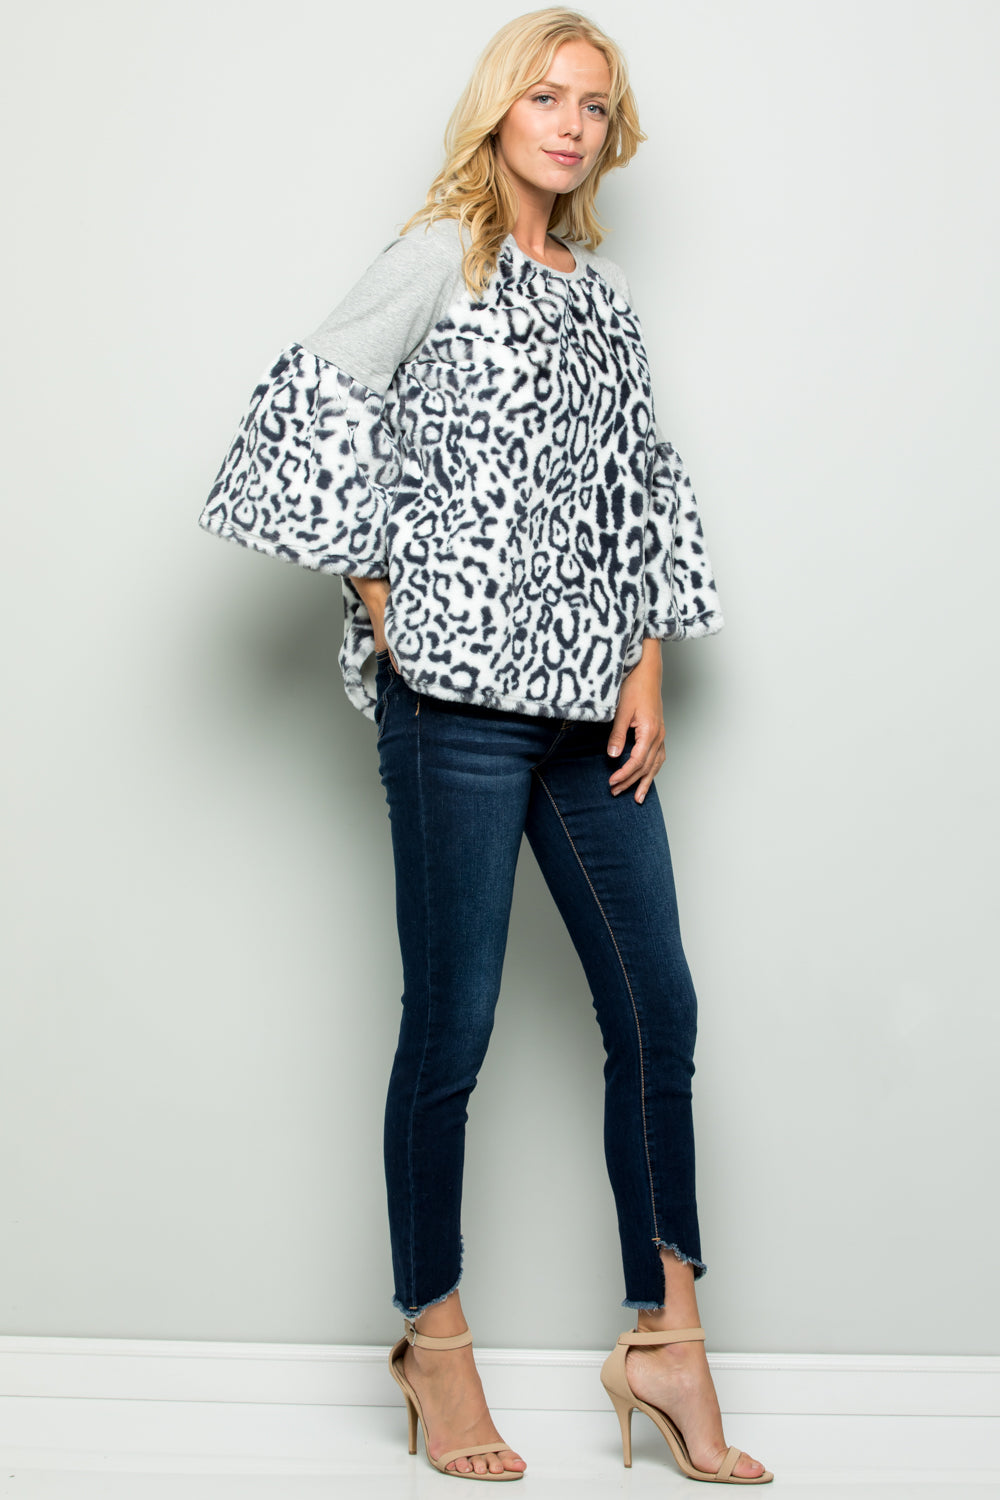 T2714 Animal Printed Faux Fur Terry Top - Black